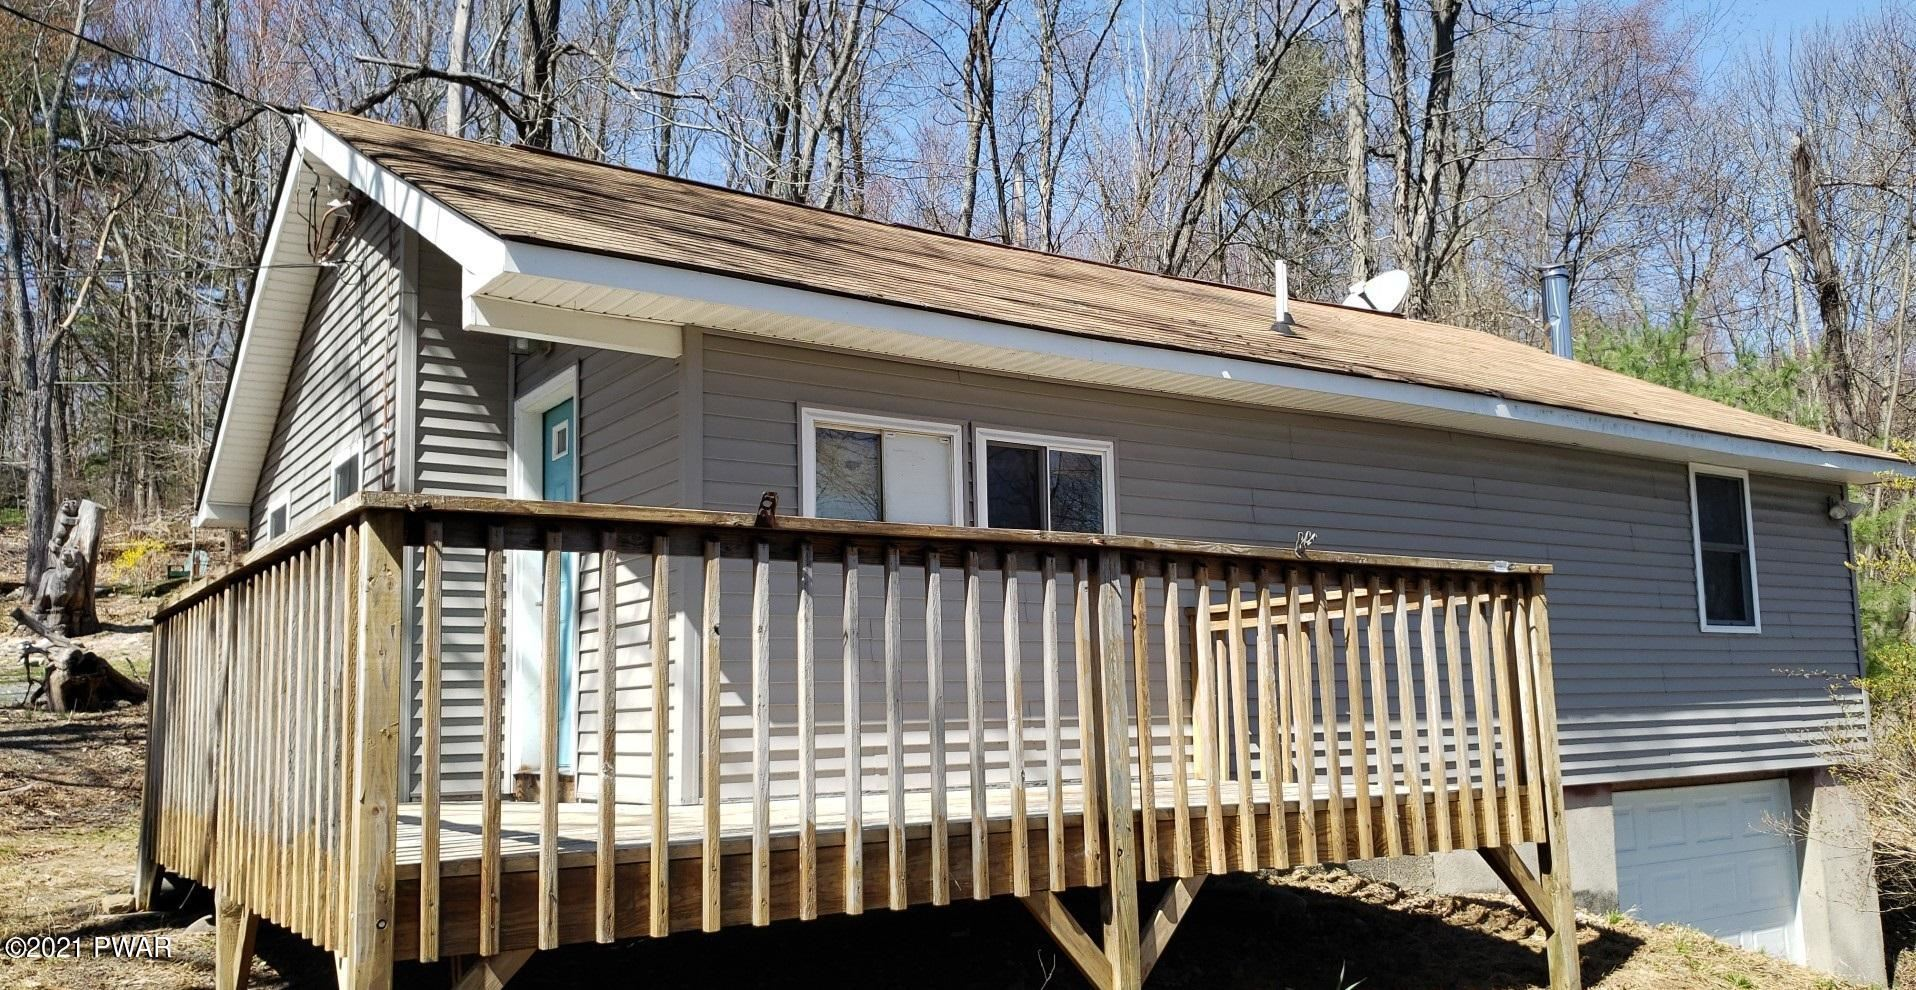 Photo of 977 Milford Rd, Dingmans Ferry, PA 18328 (MLS # 21-1049)